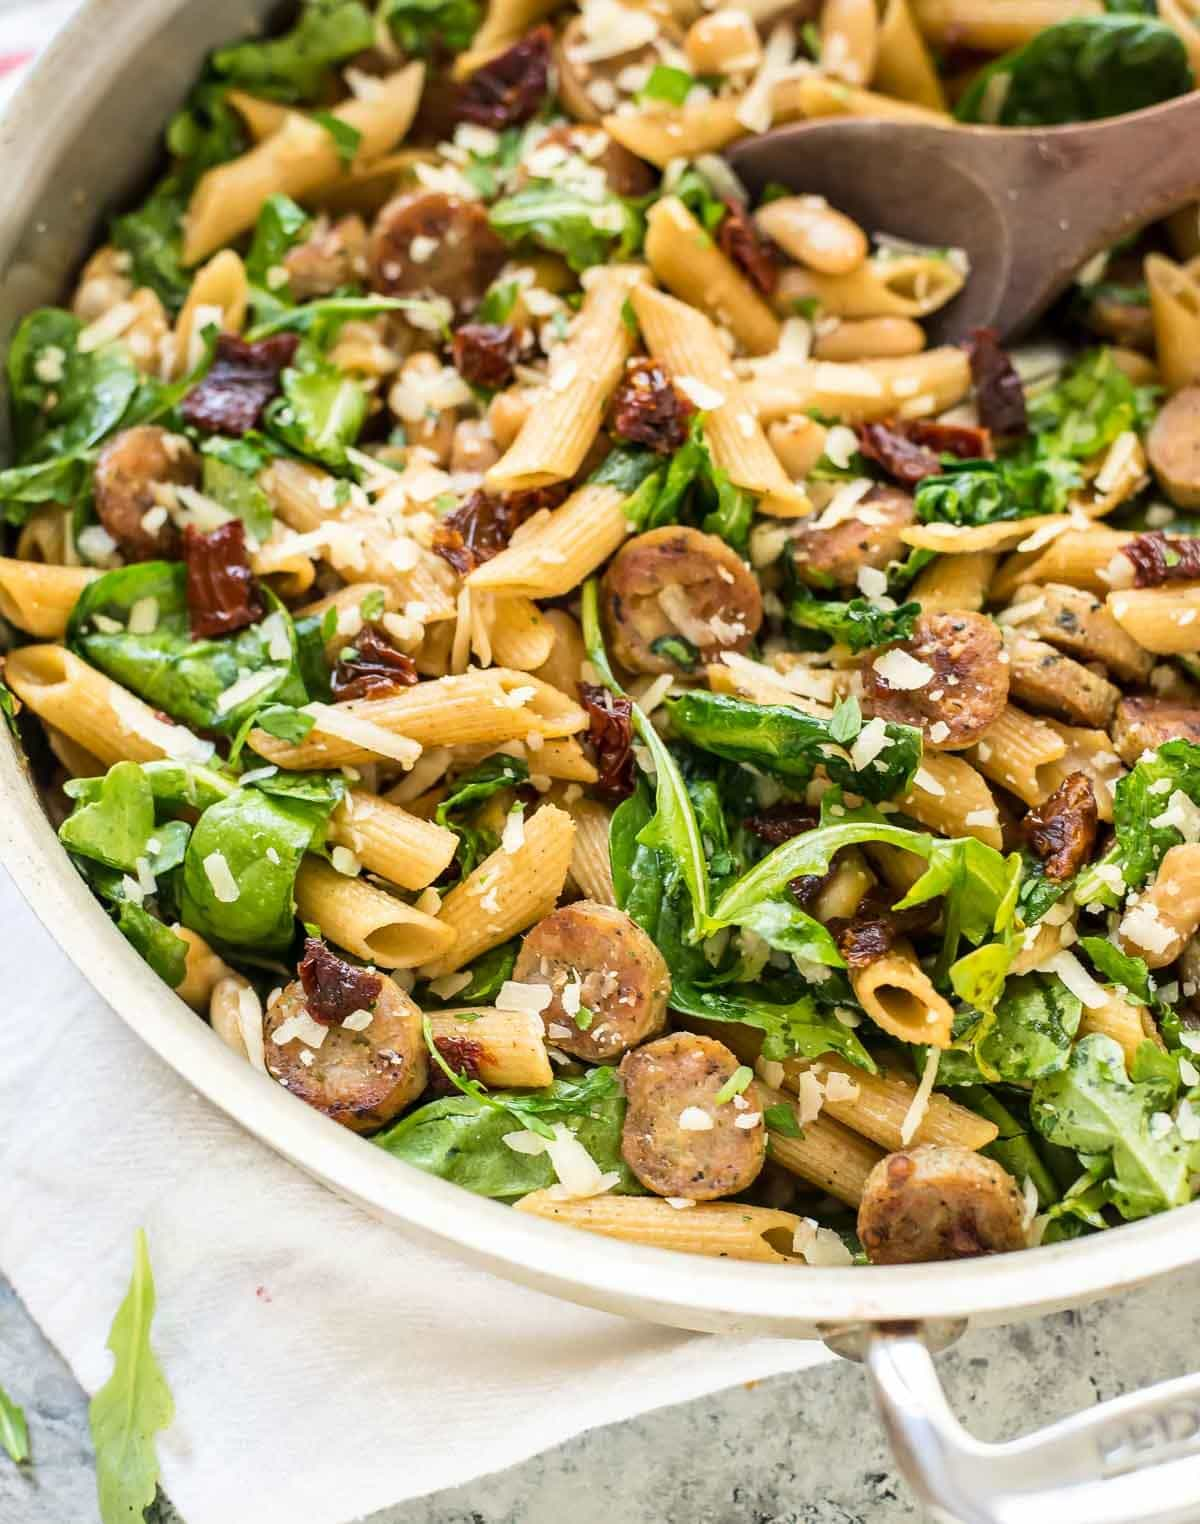 Sun Dried Tomato Pasta with Chicken Sausage, Spinach, and White Beans – EASY recipe that is absolutely delicious! Perfect for busy weeknights. @wellplated